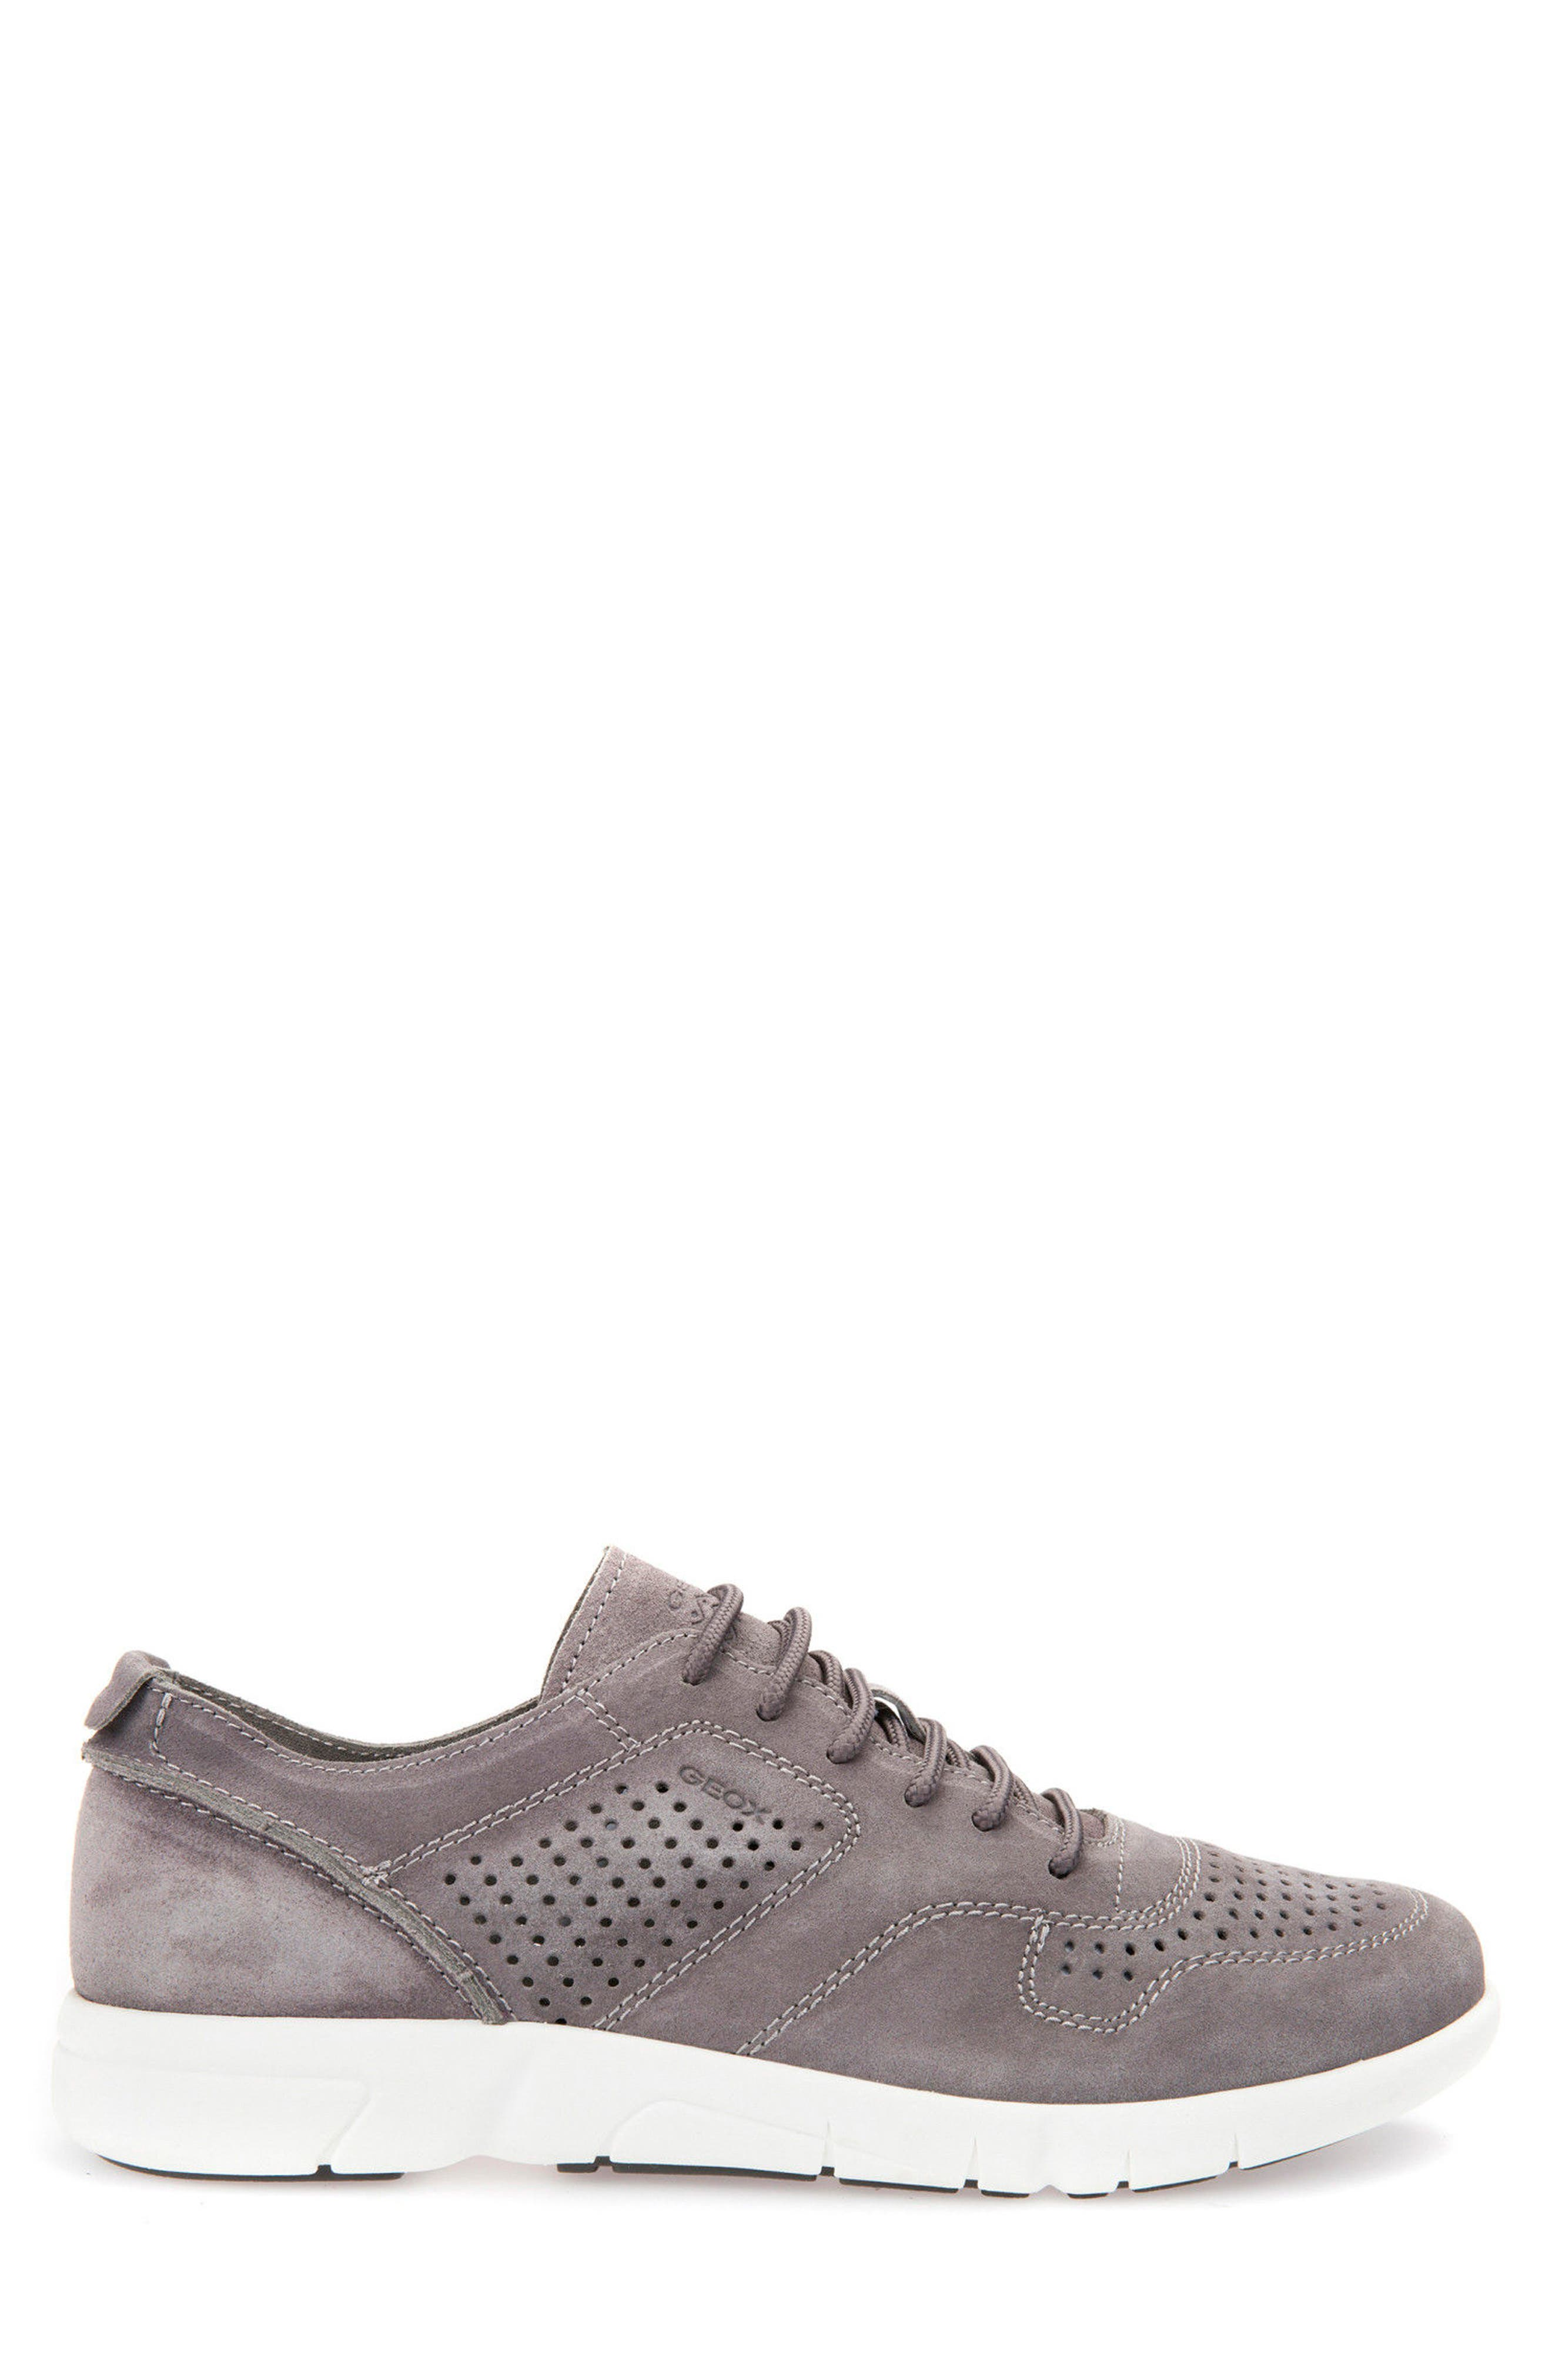 Brattley 2 Perforated Sneaker,                             Alternate thumbnail 3, color,                             020